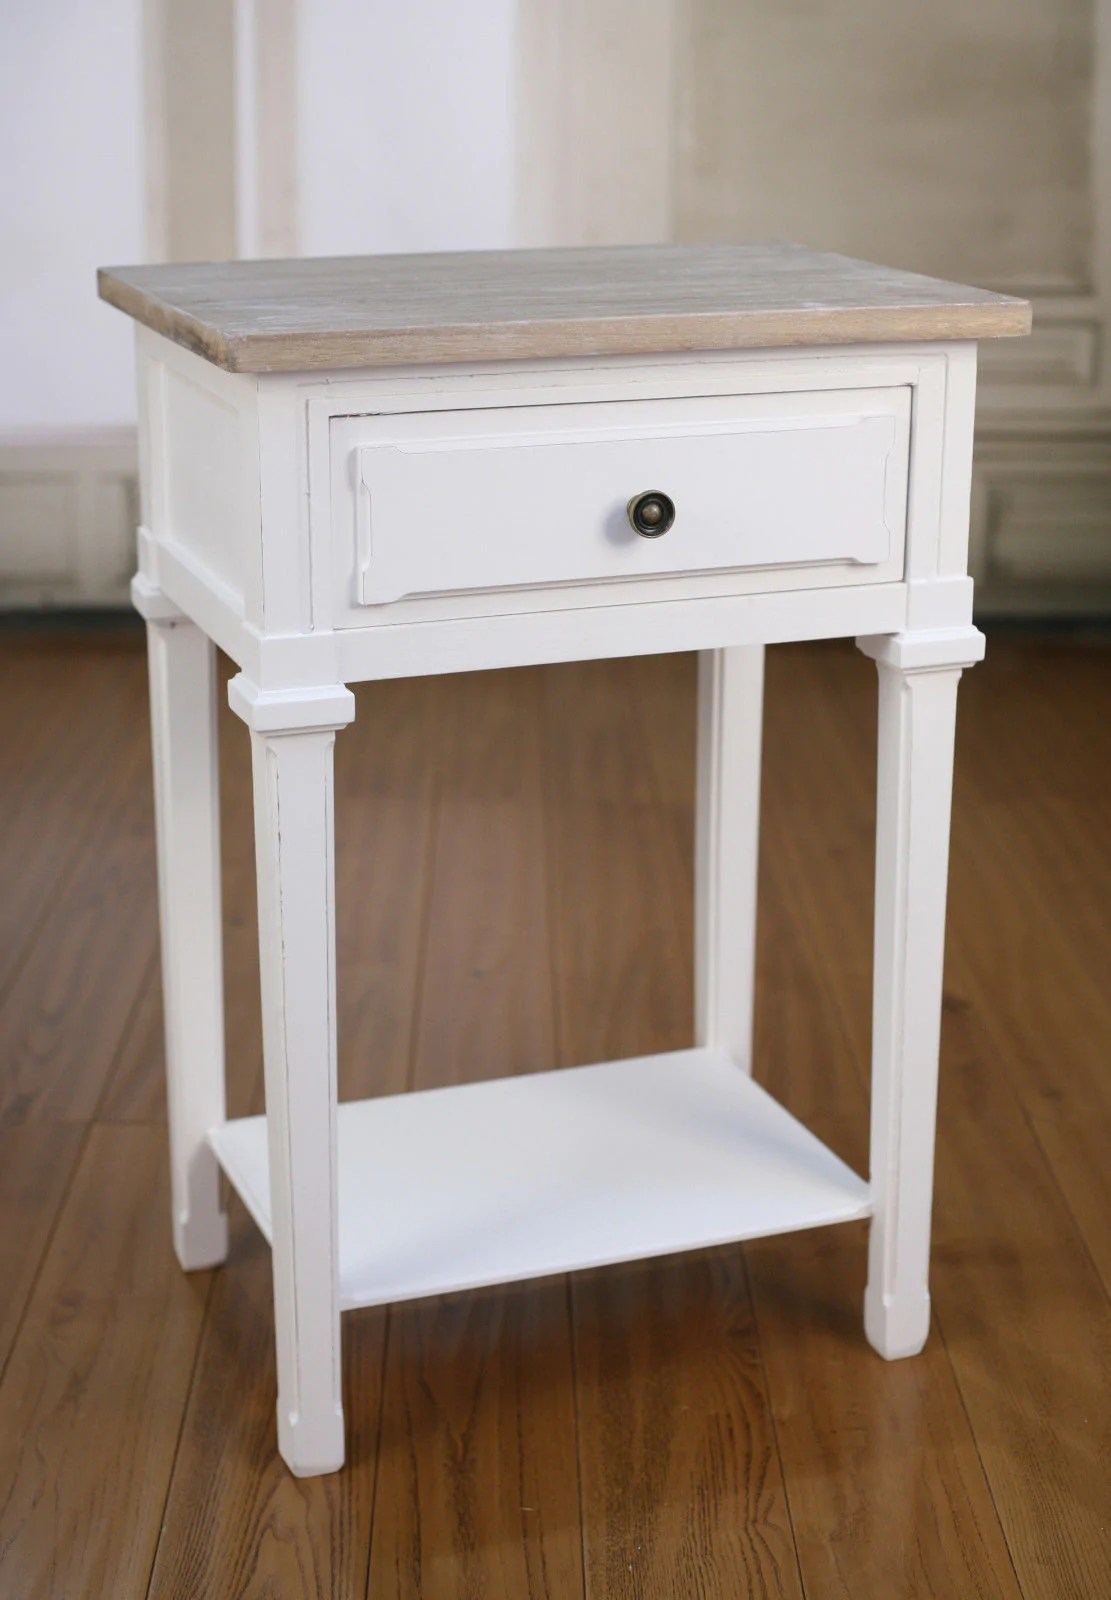 Provincial Bedside Tables Bedside Table French Provincial Grey Wash Antique Bedside Chest